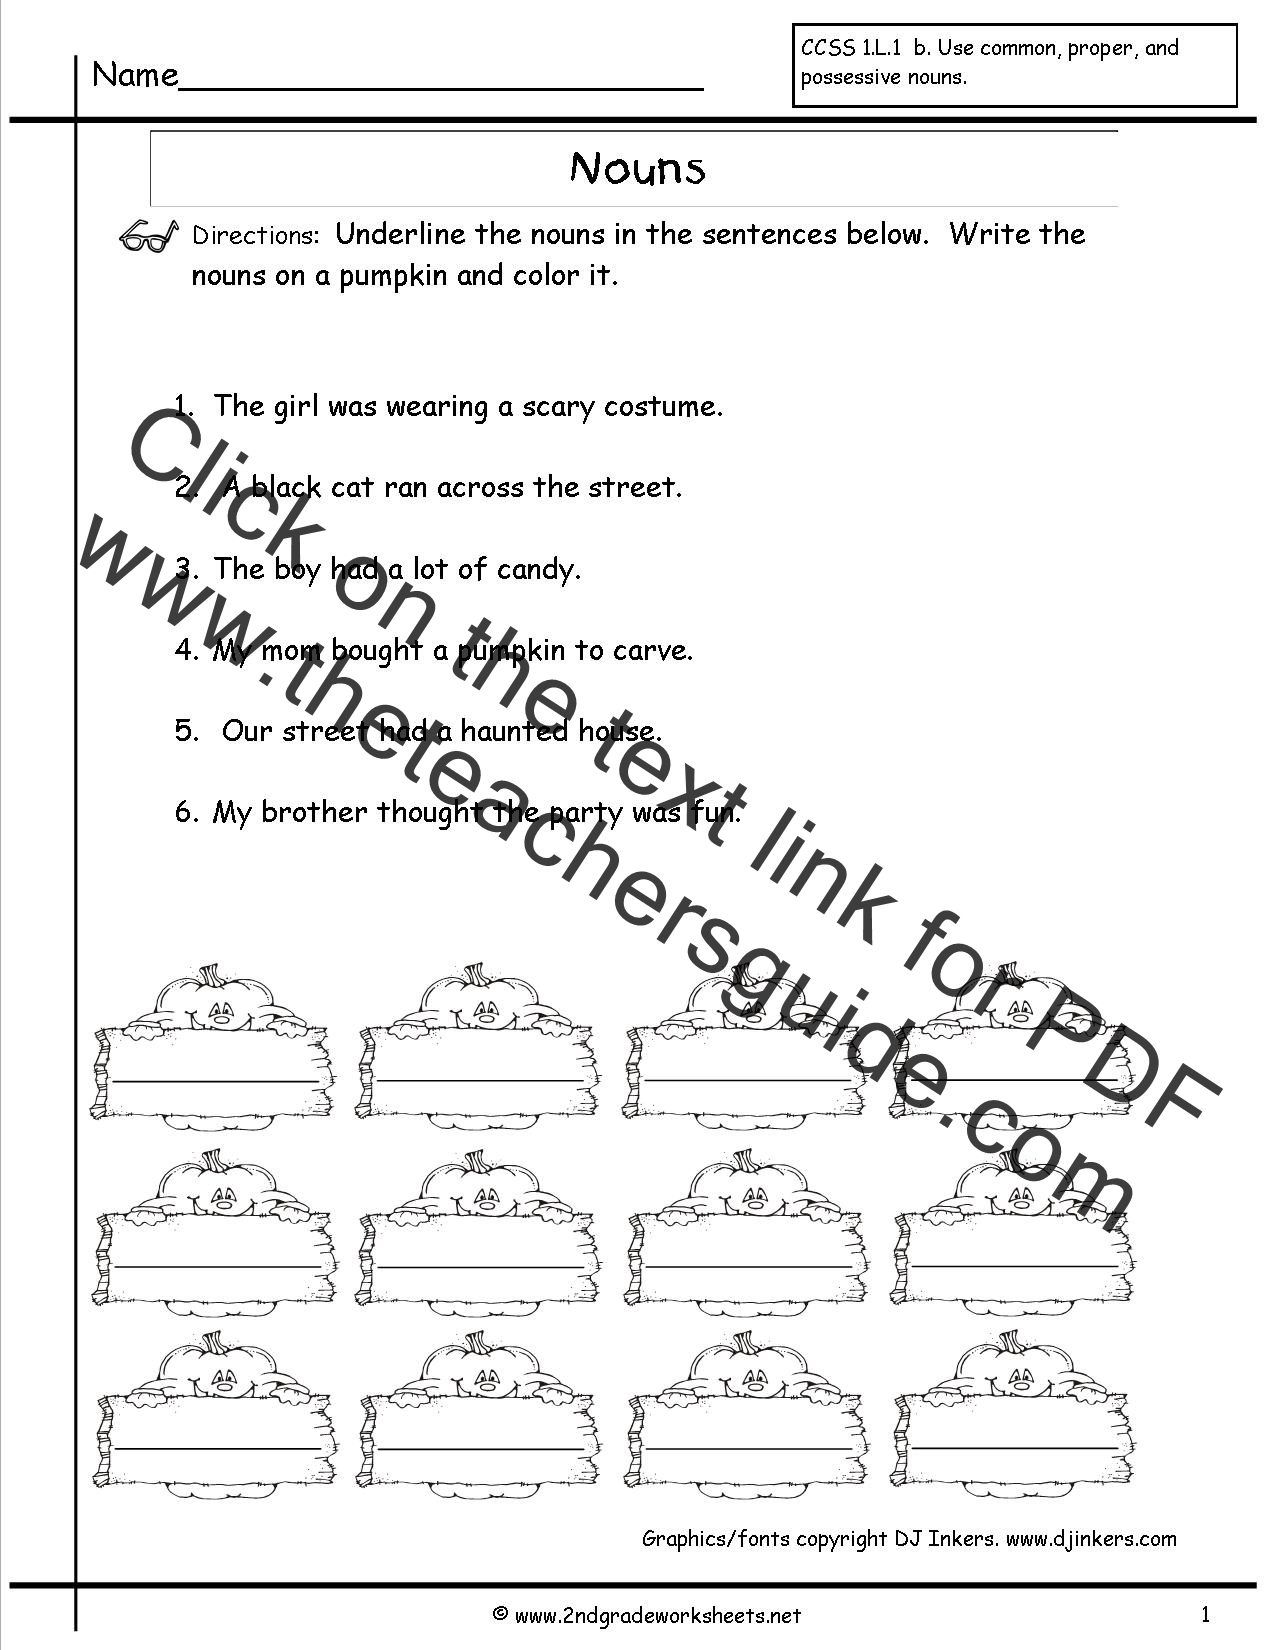 ... with Plural Nouns Worksheets. on grade 2 singular plural worksheet 4